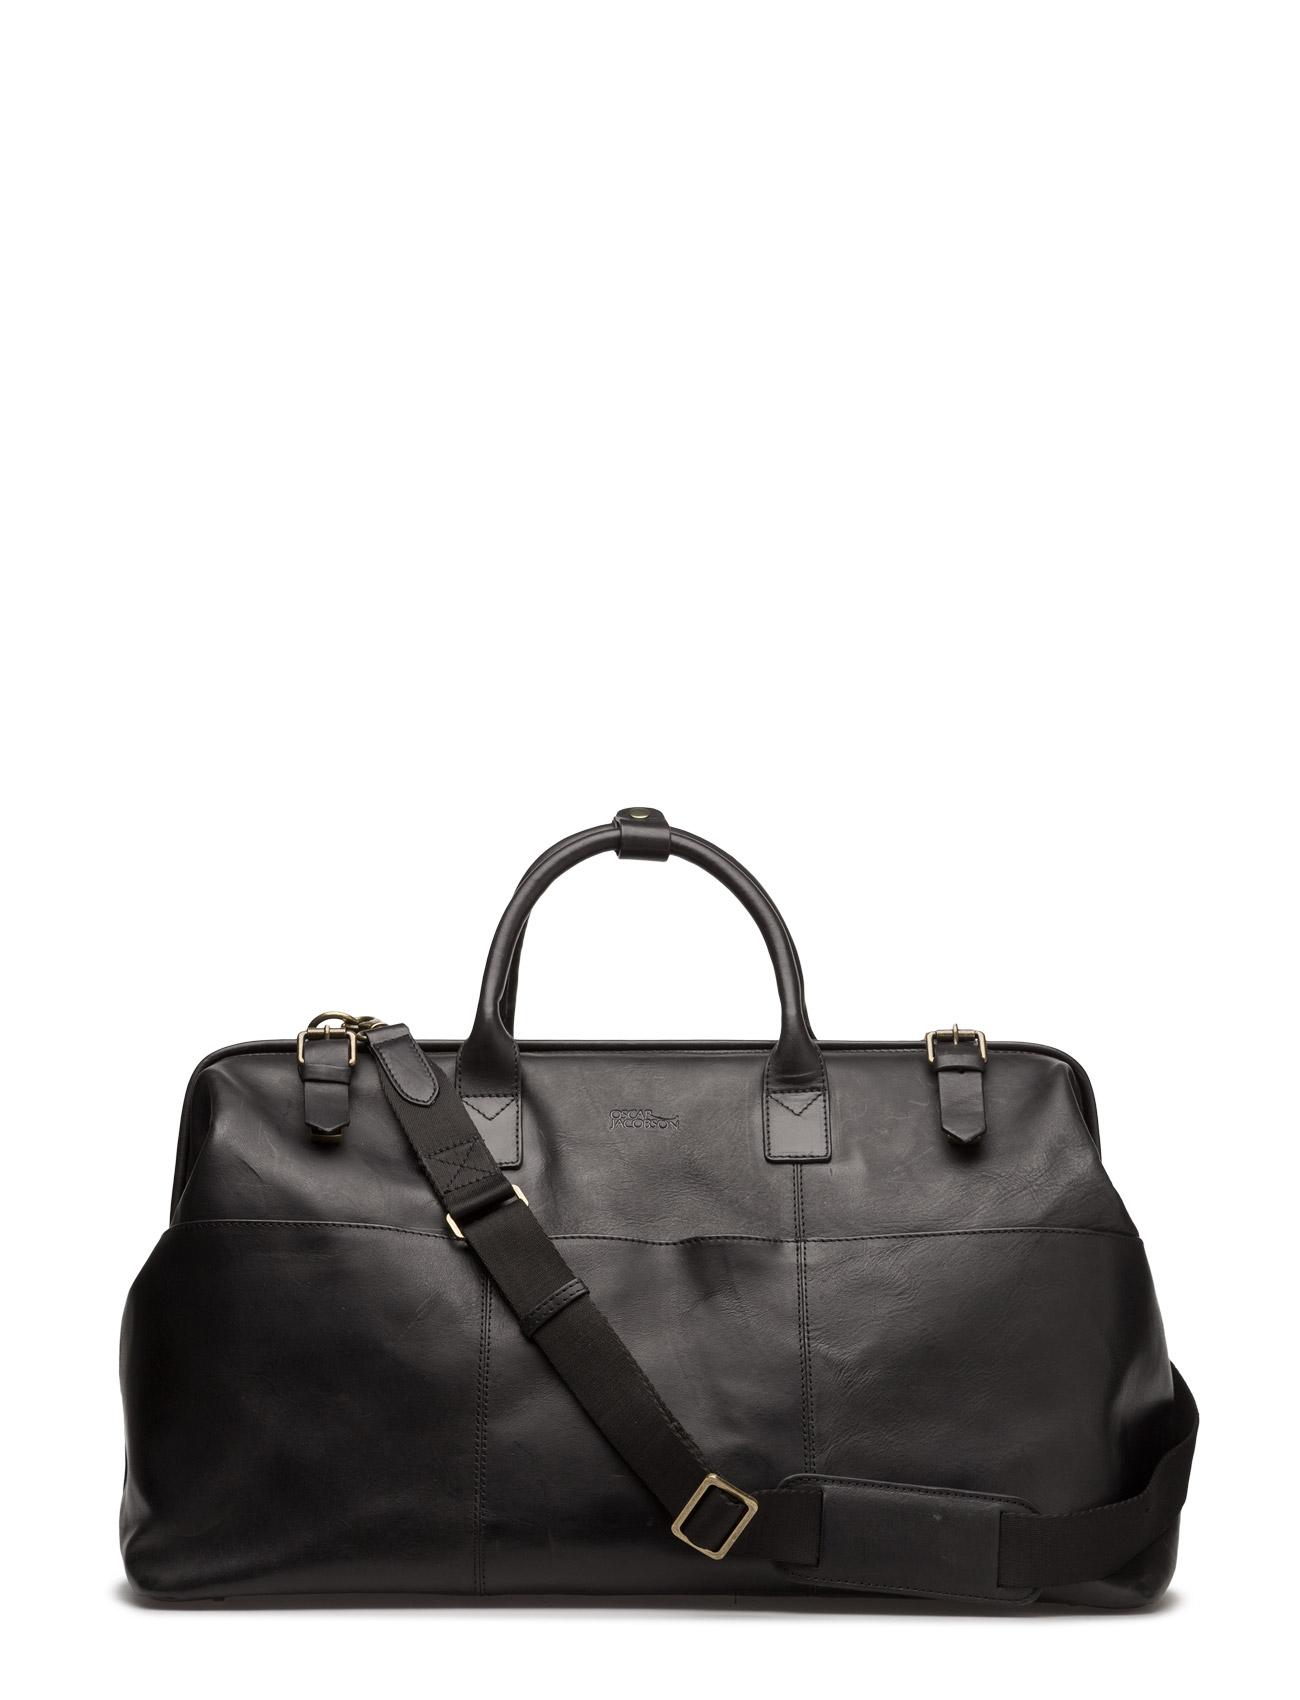 Oscar Jacobson Leather Weekend Male Large Bag Blac 1X1X8p6e